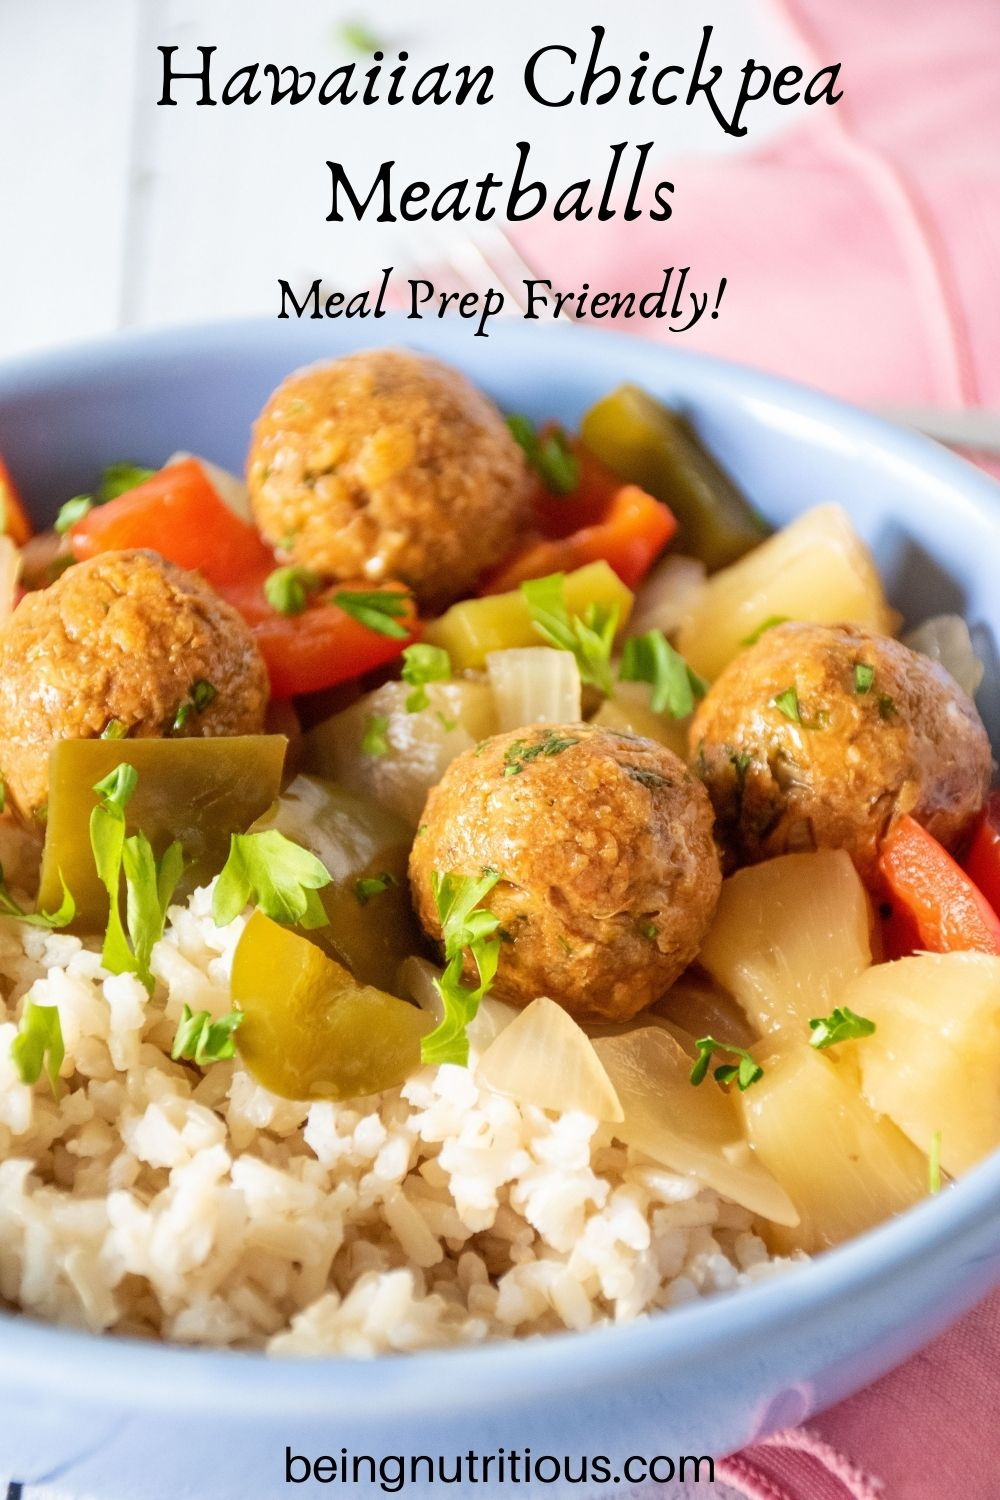 Bowl with rice, meatballs, and onions and bell peppers. Text overlay: Hawaiian Meatballs; Meal prep friendly!